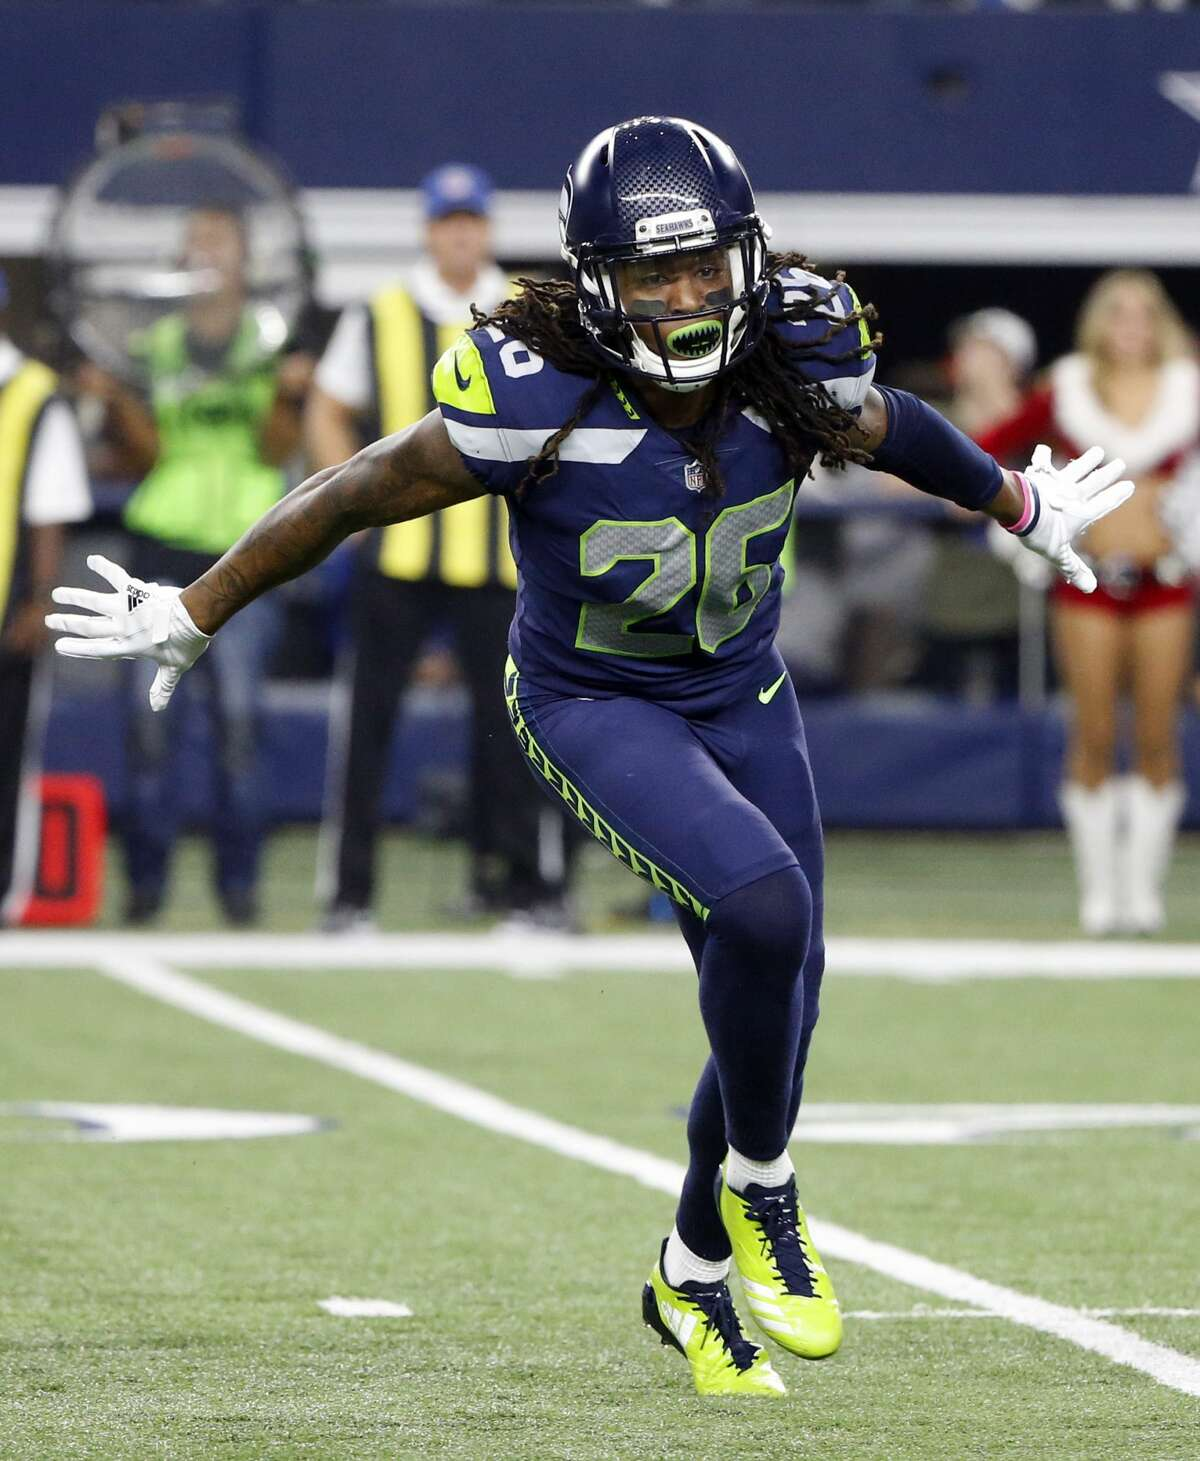 CORNERBACKS  The biggest concern has been what the Seahawks can get from the right cornerback spot.  Shaquill Griffin has had the left side, Sherman's former spot, locked up since Day 1 of training camp. He's demonstrated the confidence and swagger you'd like to see in a star in the making, suggesting he'll have a breakout second NFL season. Justin Coleman may be one of best slot corners in the league.  The right side, however, is up in the air.  Expected starter Dontae Johnson, formerly of the San Francisco 49ers, isn't game eligible to play until Week 9 after being placed on Injured Reserve on Saturday. Byron Maxwell, who played a critical role on the Seahawks' championship team in the 2013 season, was released on injury settlement. And veteran backup Neiko Thorpe has missed significant time already, ahead of Week 1, with a wrist issue.  That means rookie Tre Flowers has to grow up quickly.  A safety in his time at Oklahoma State, Flowers has had to make the transition to cornerback and adopt the Seahawks' signature